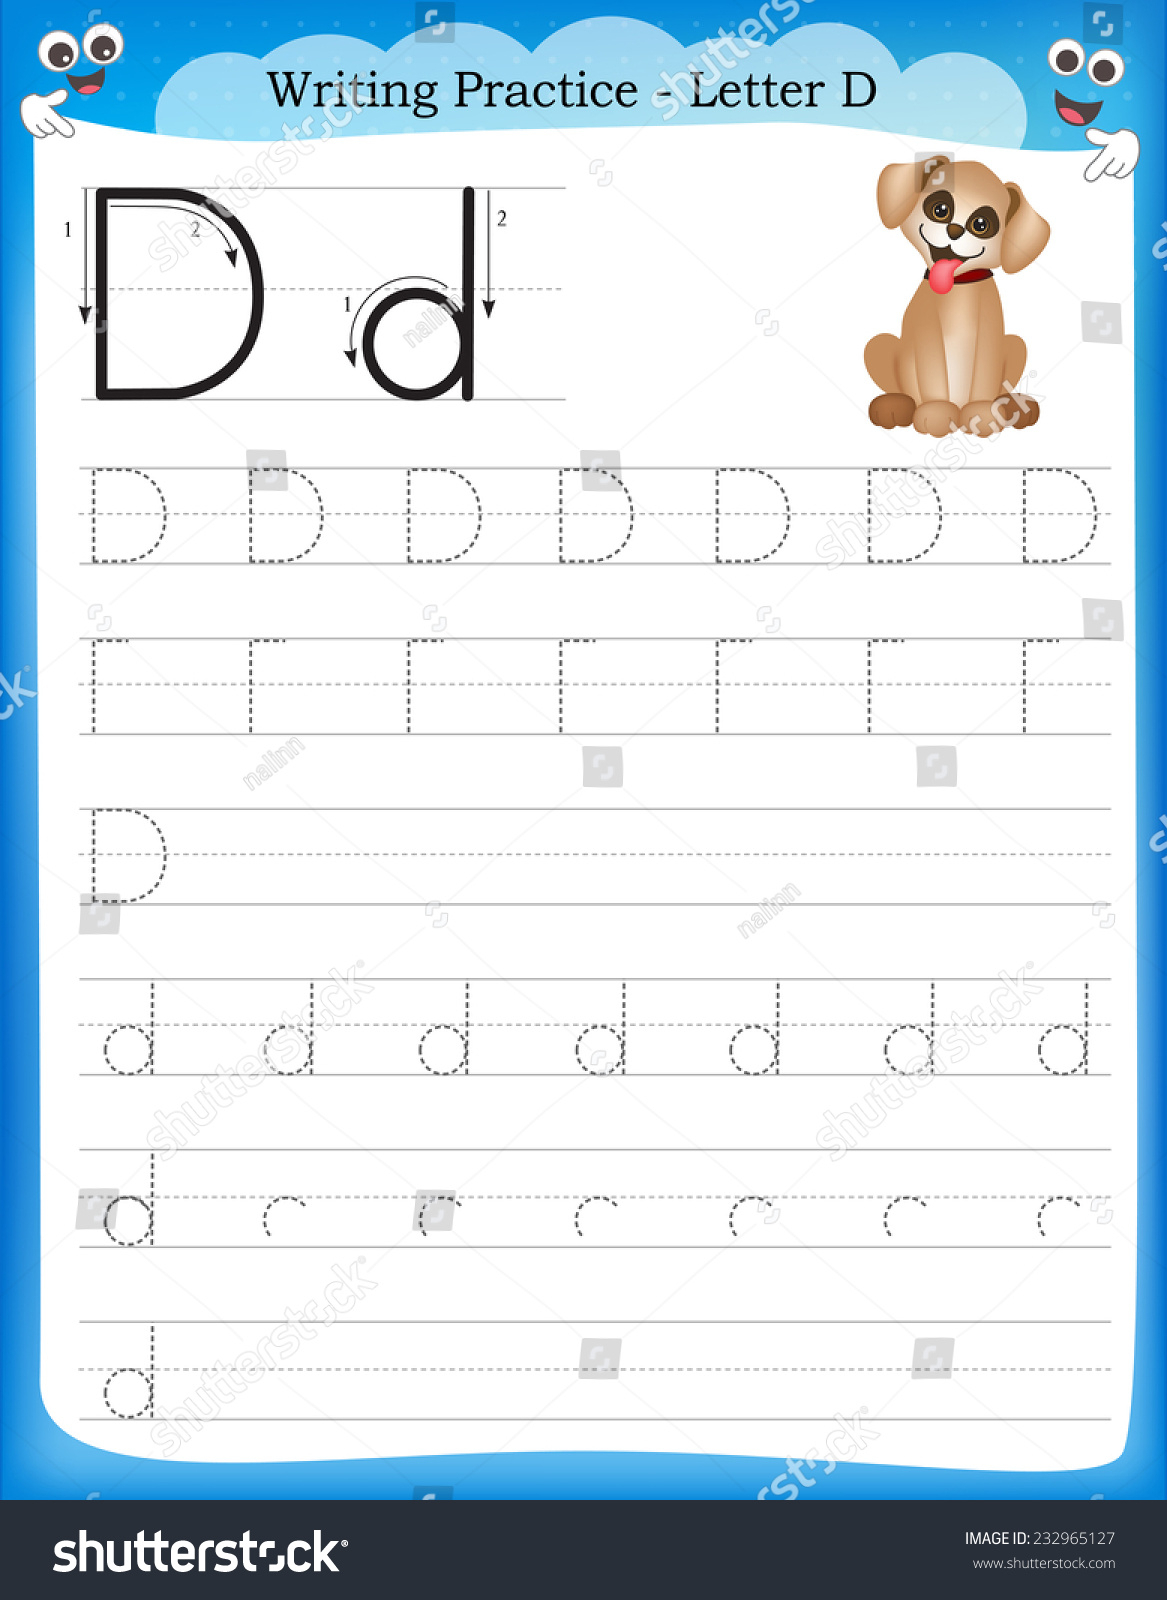 Free Printable Letter D Worksheets | Printable Worksheets with Letter D Worksheets Sparklebox